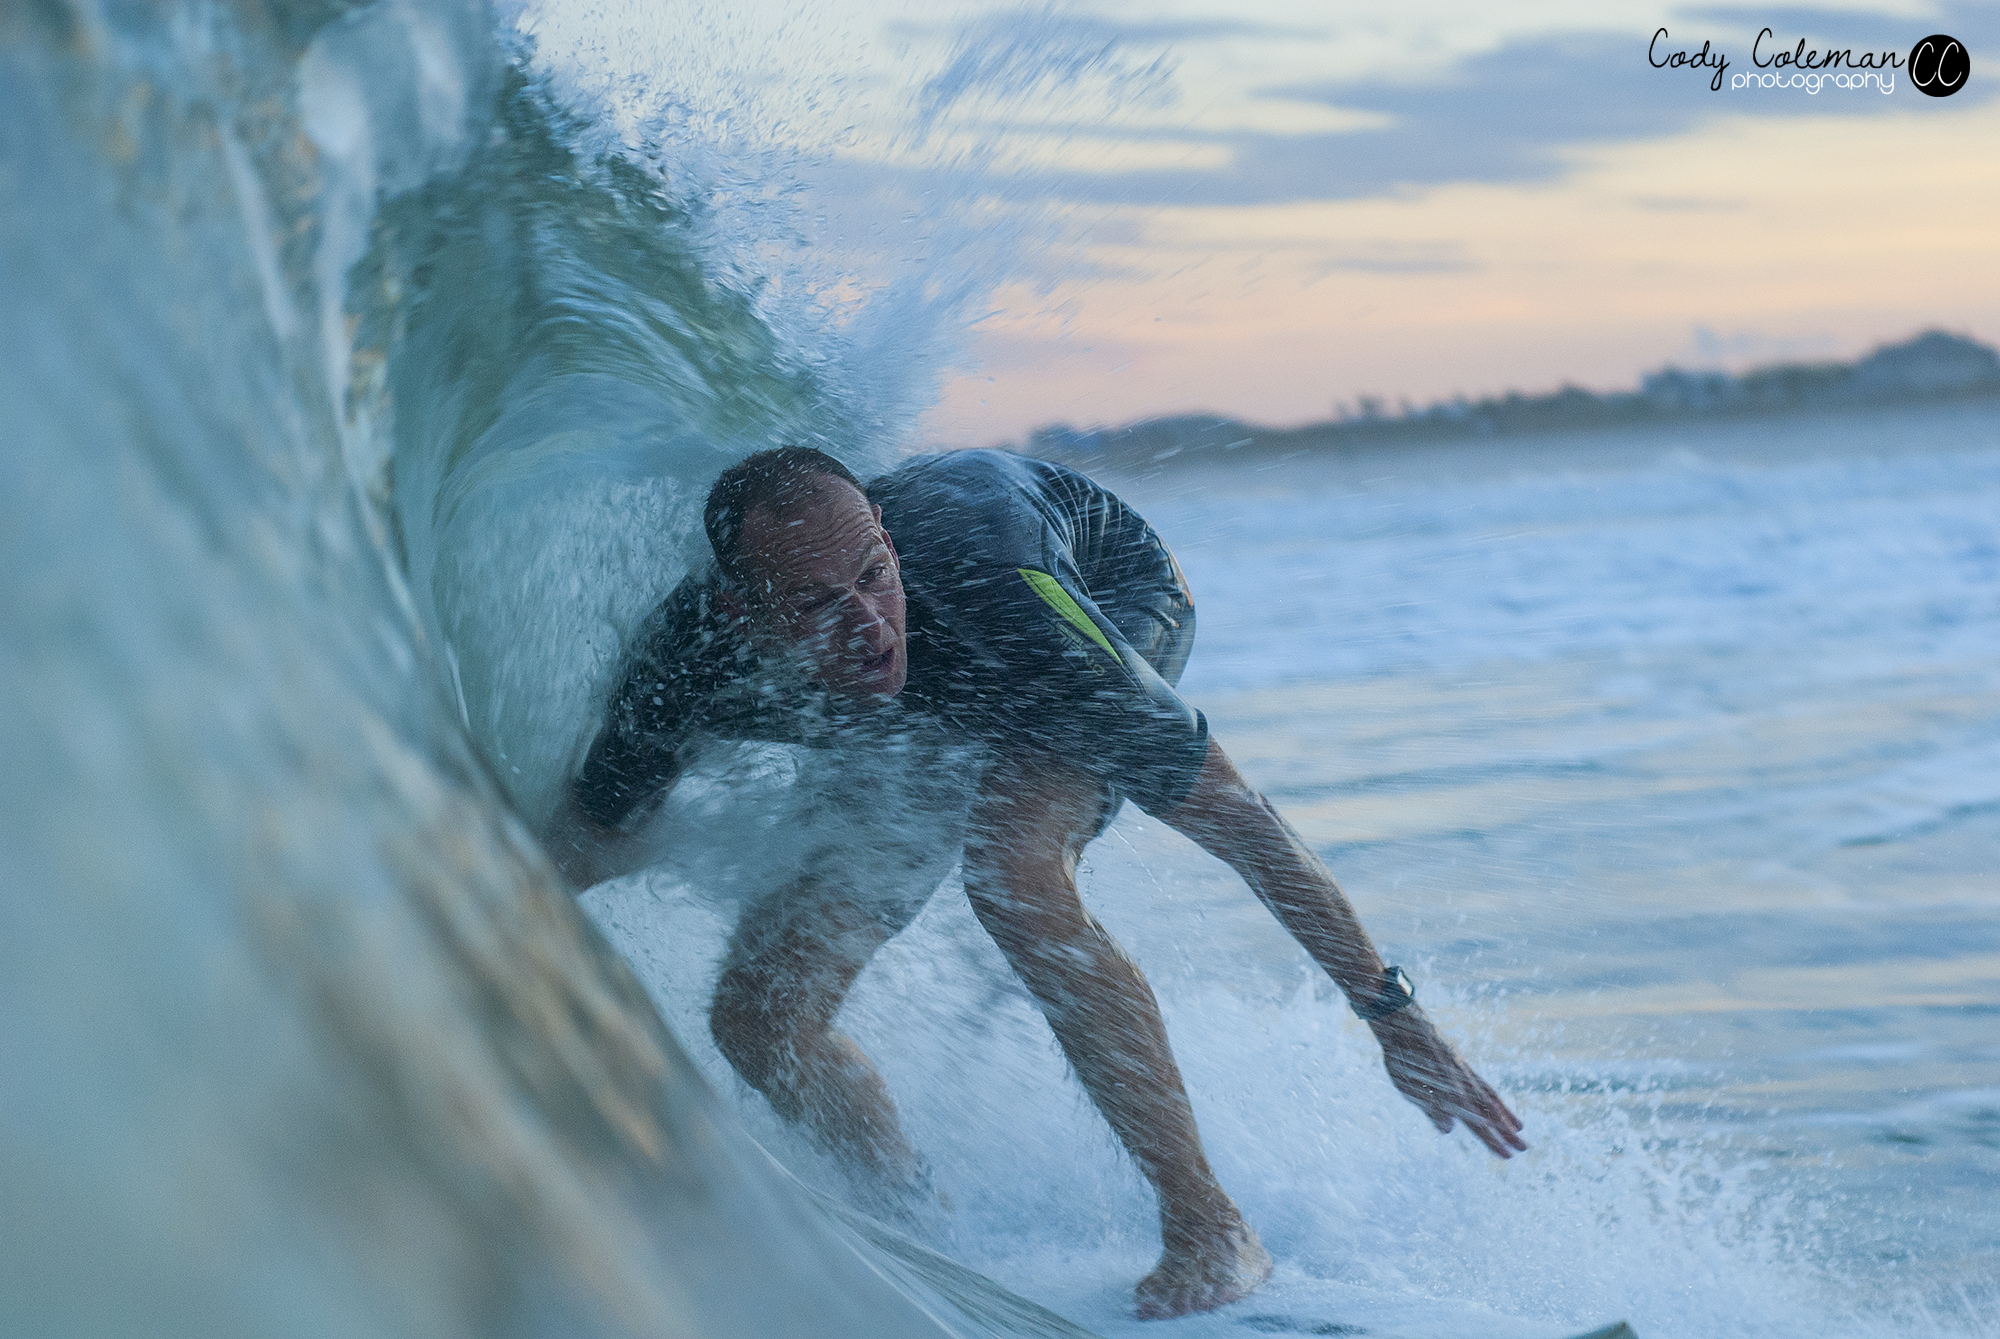 Paul Lange got his share of fun waves just before sunset.